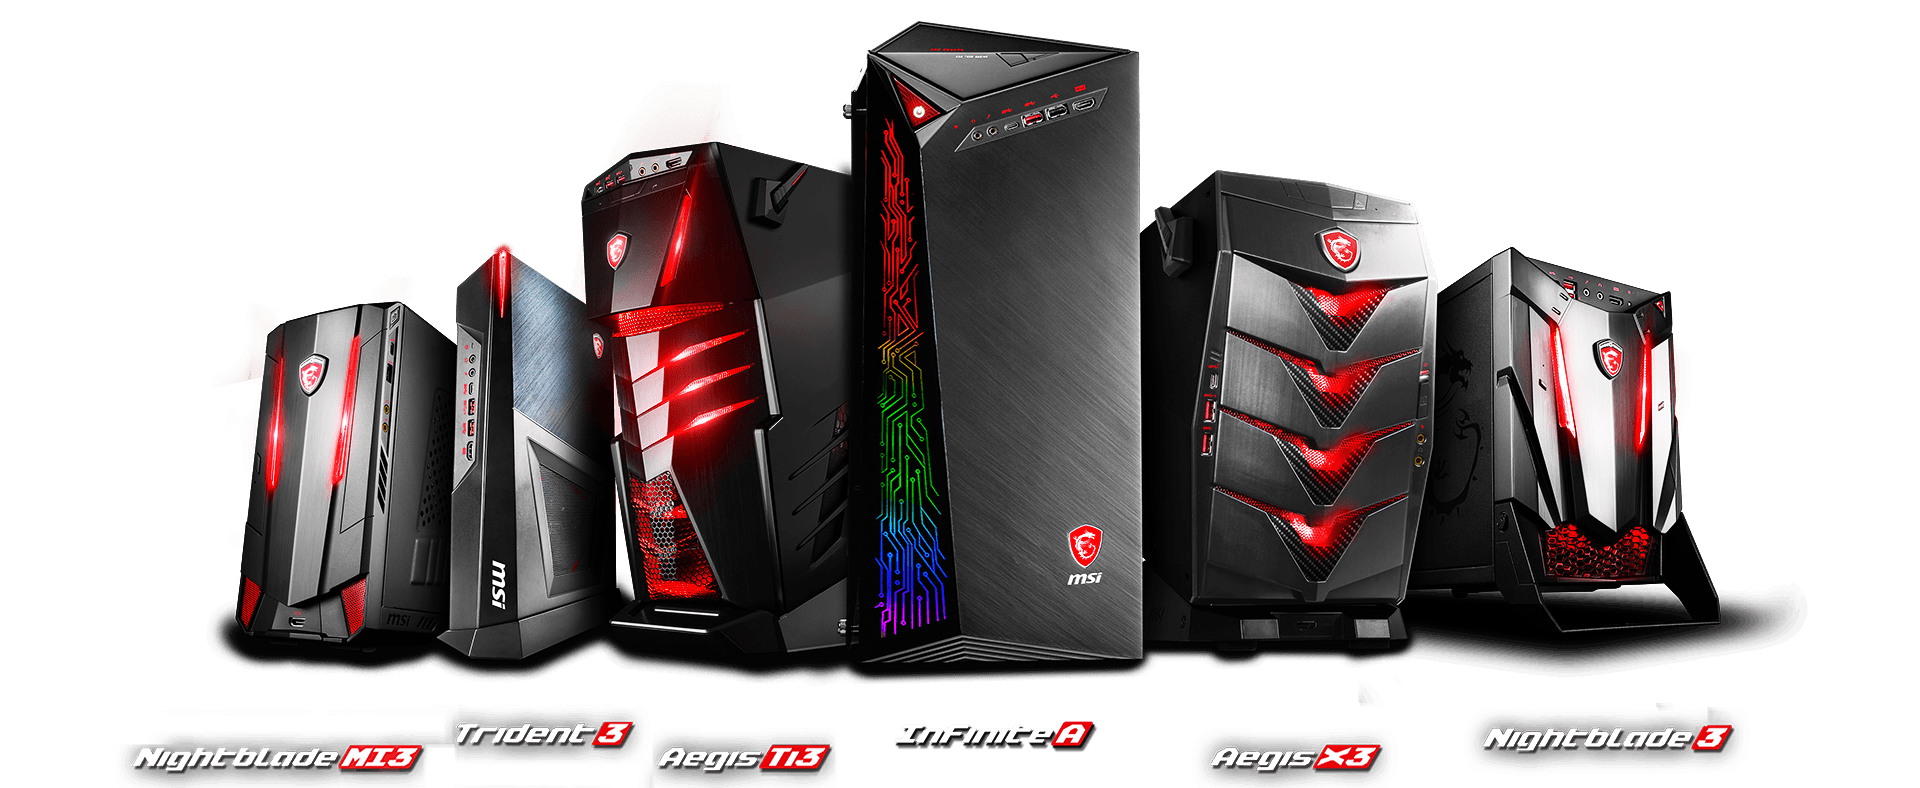 The MSI product line